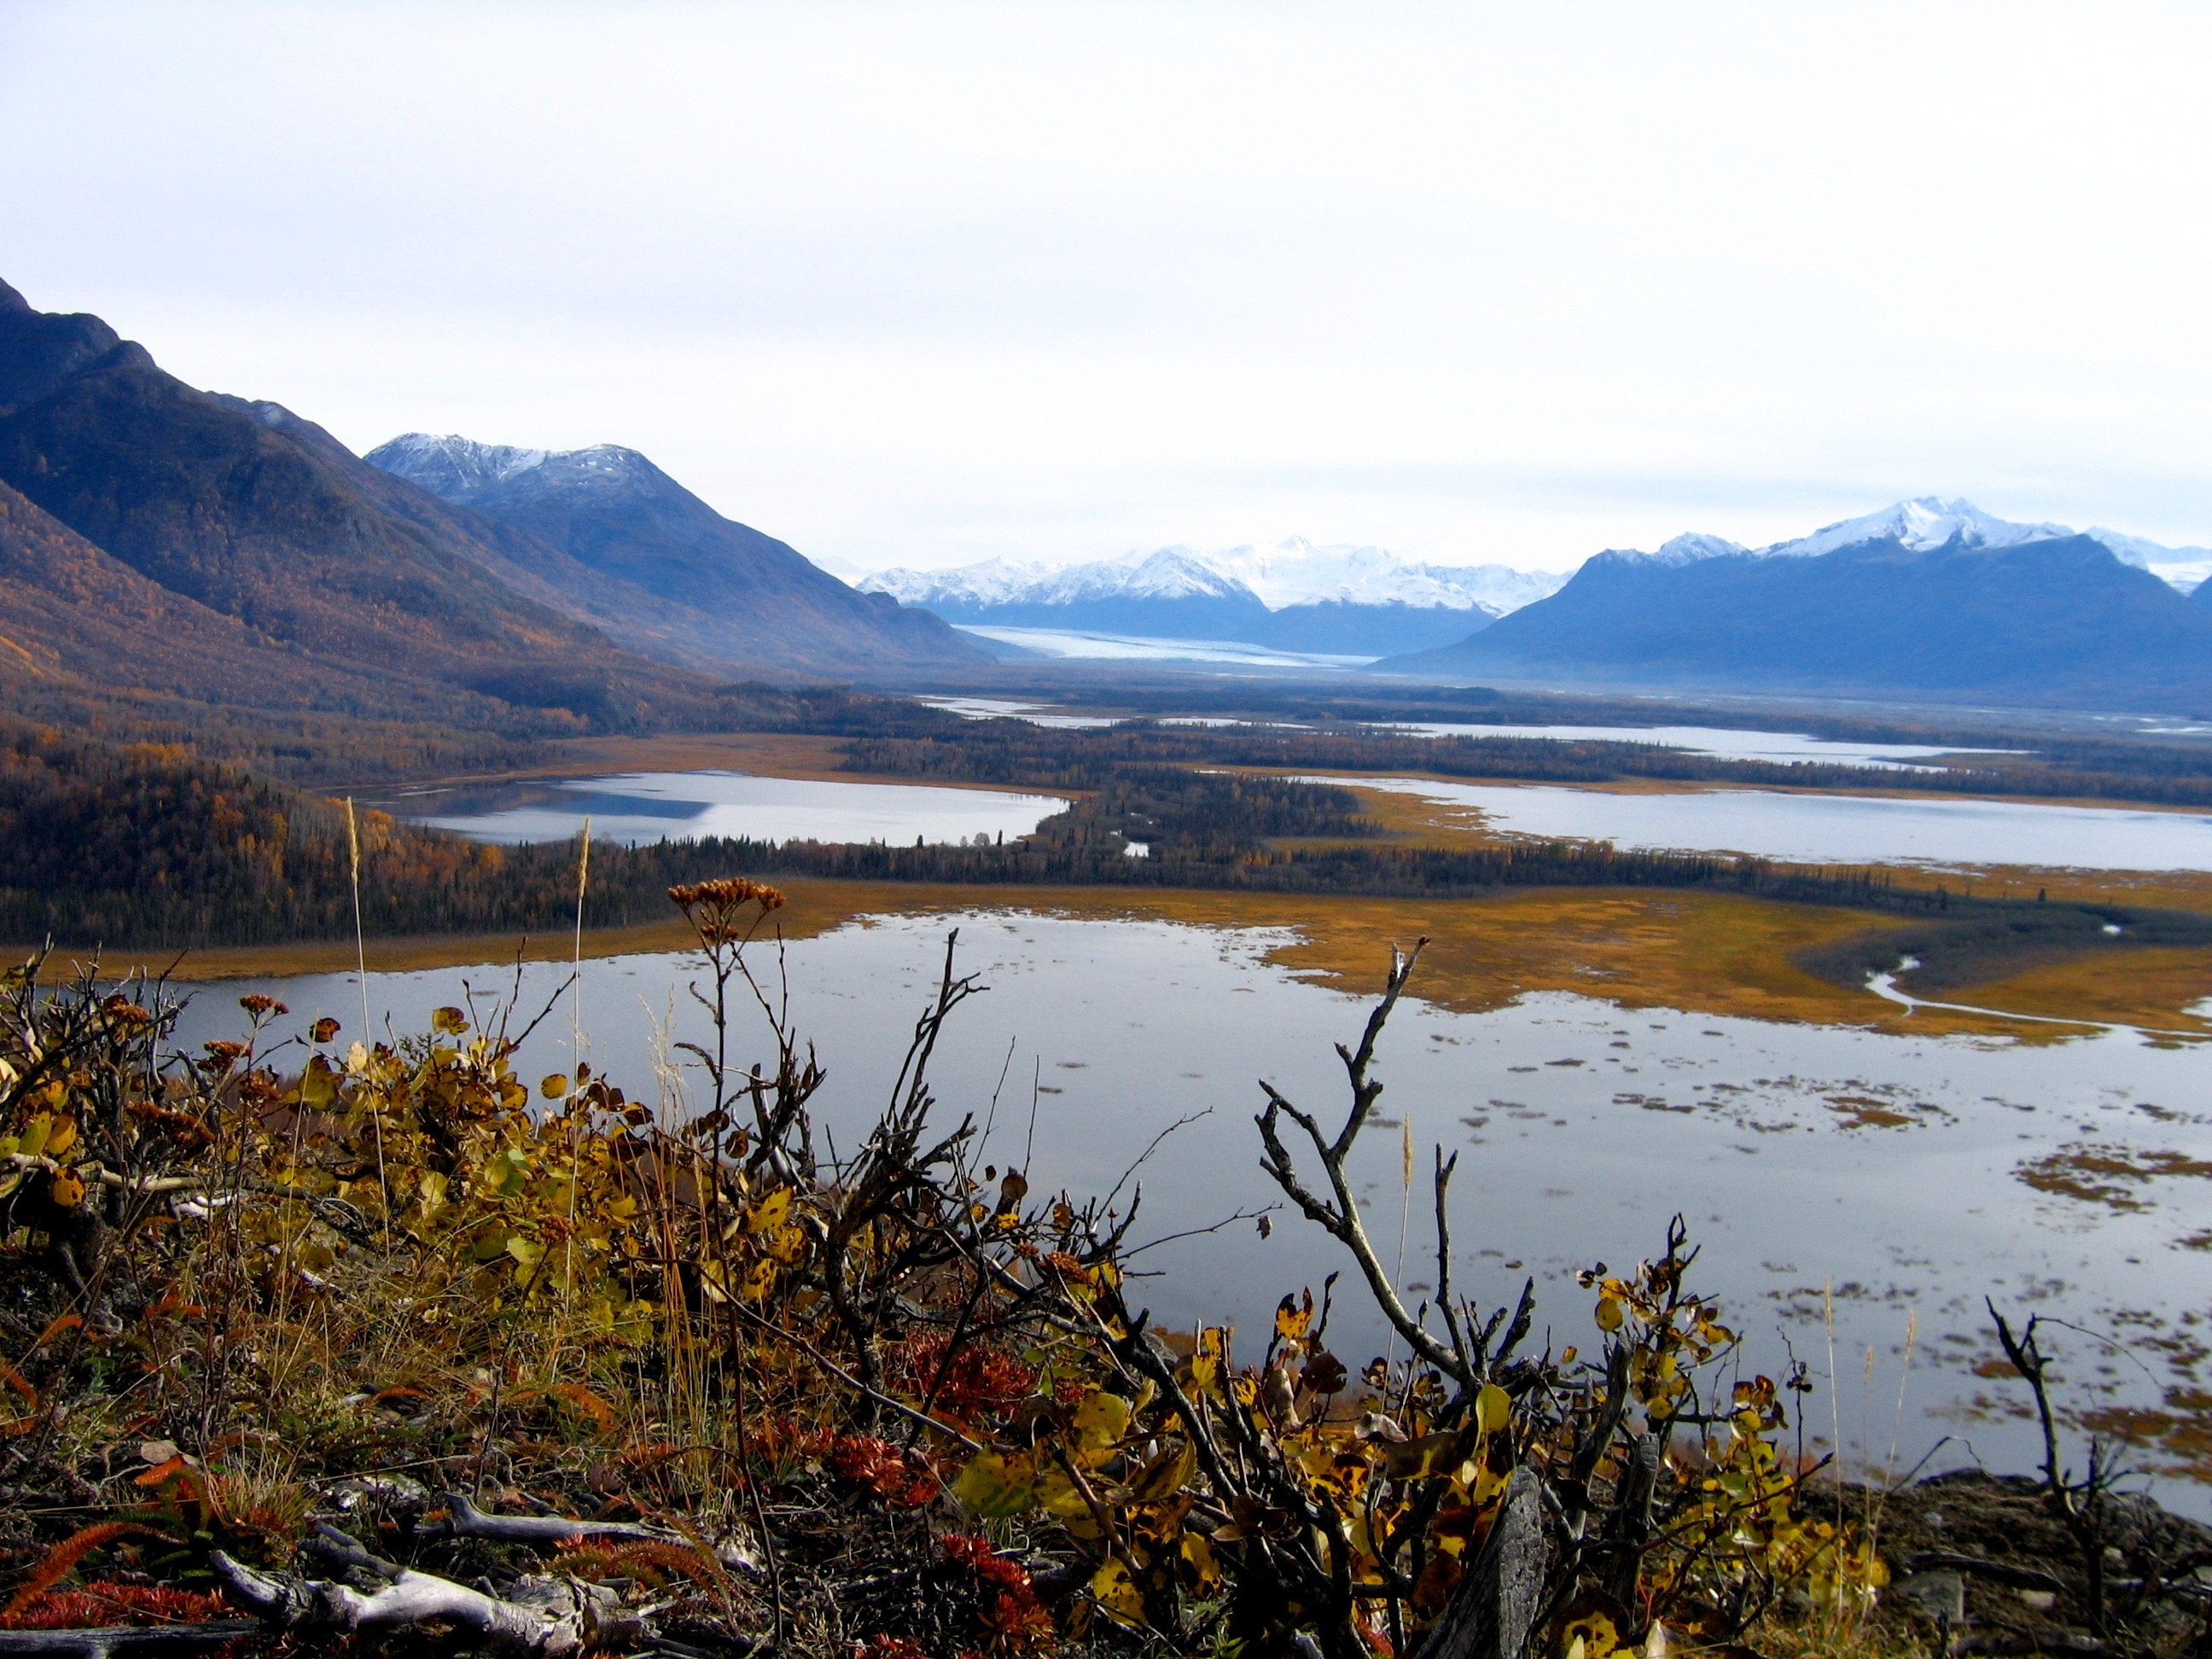 Mud Lake, Jim Lake, Gull Lake, Leaf Lake Swan Lake and Knik Glacier